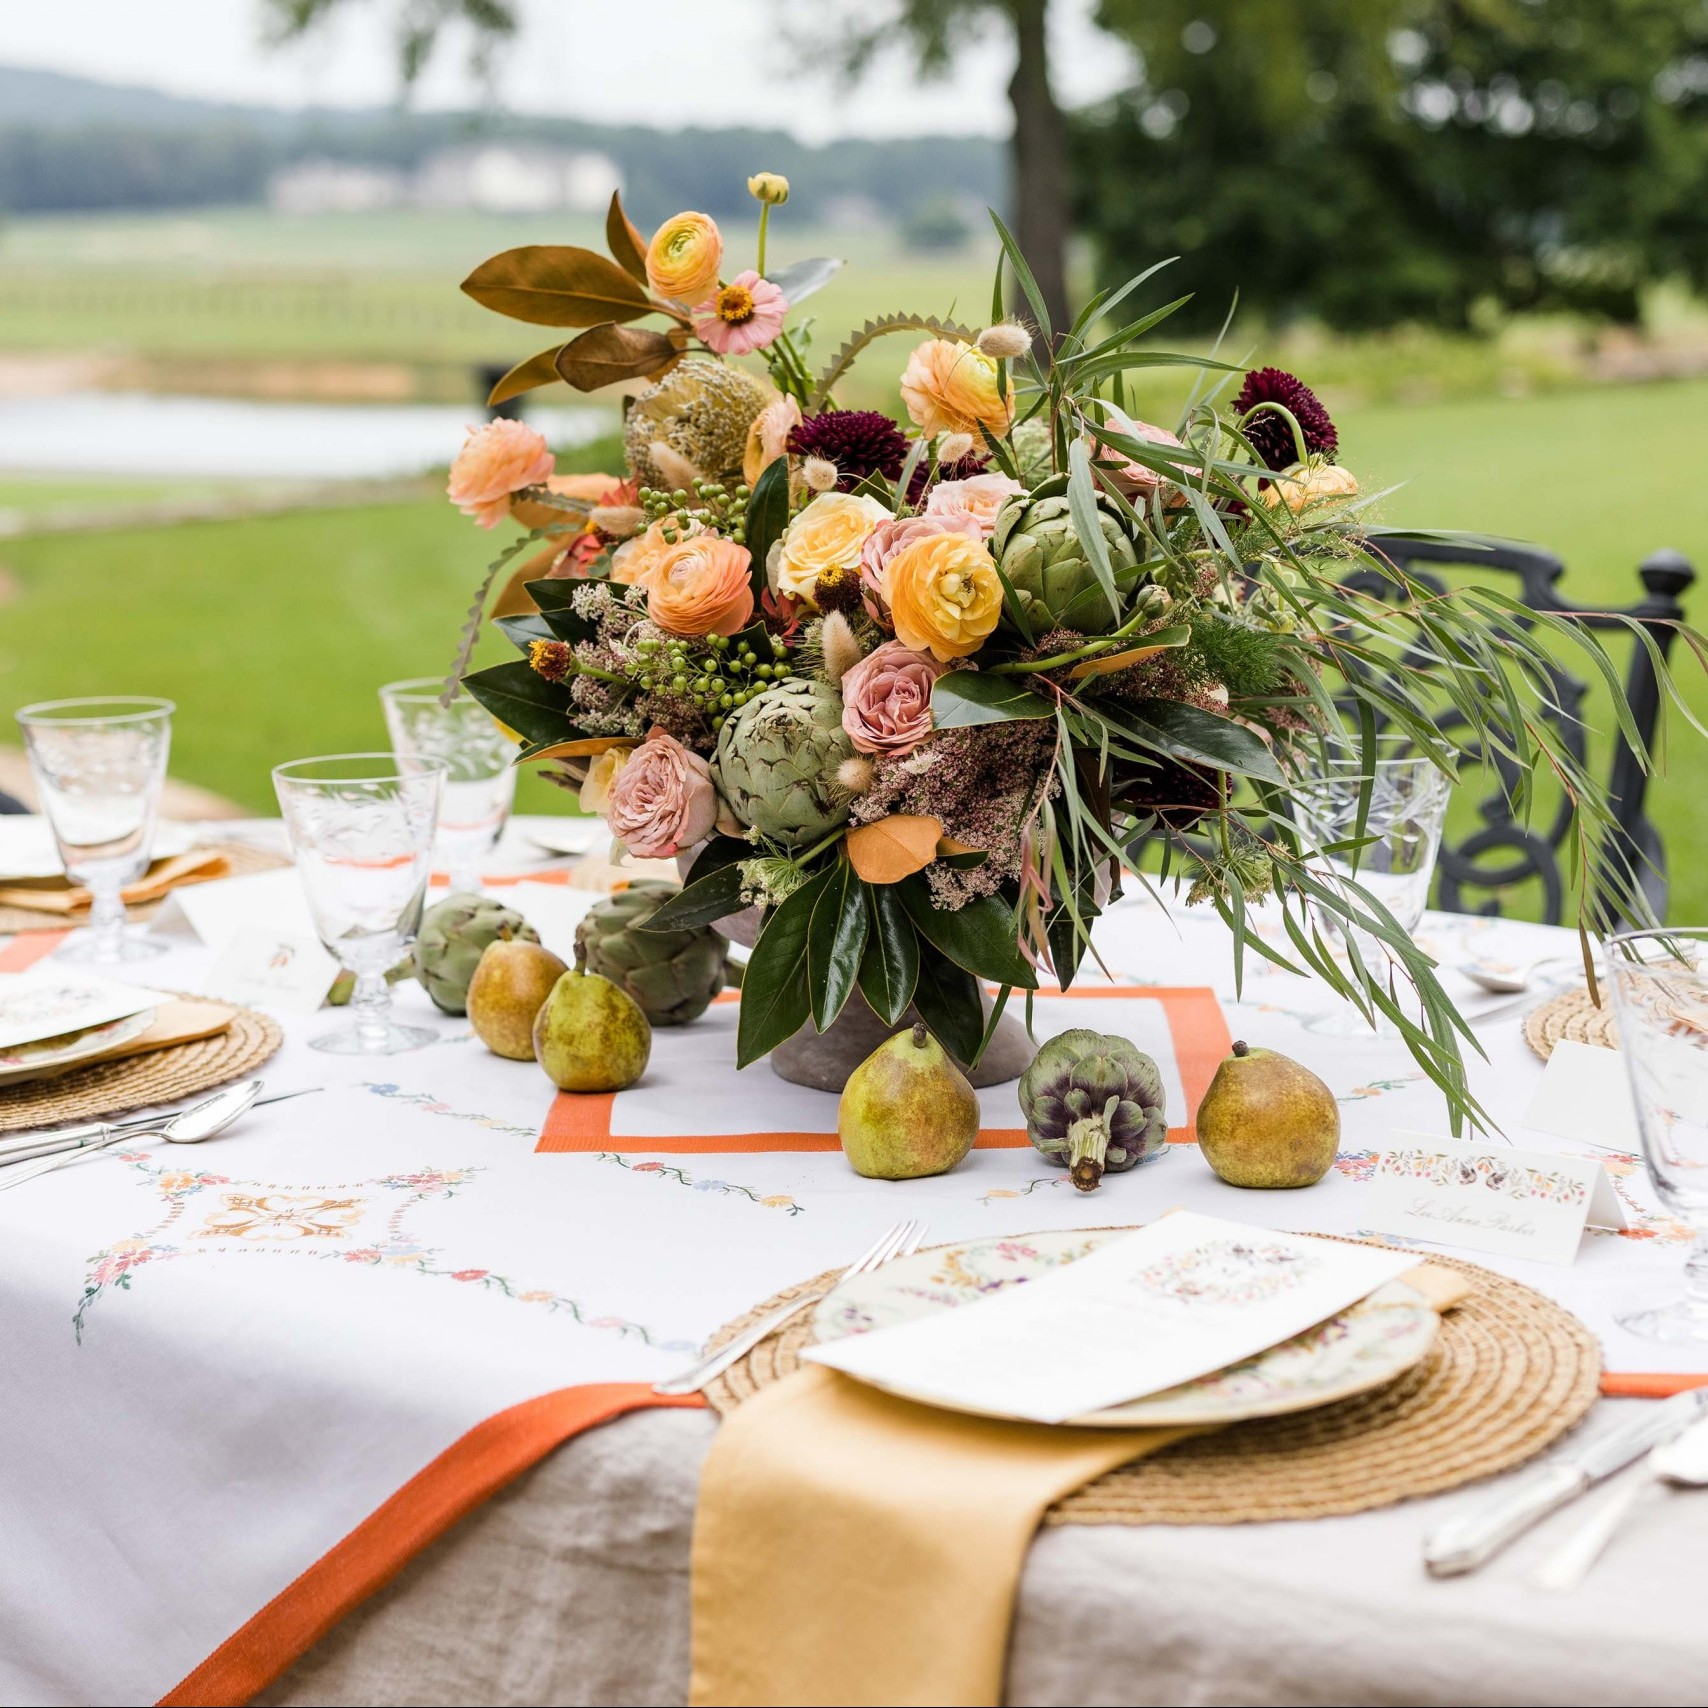 A Thanksgiving Table at Pursell Farms